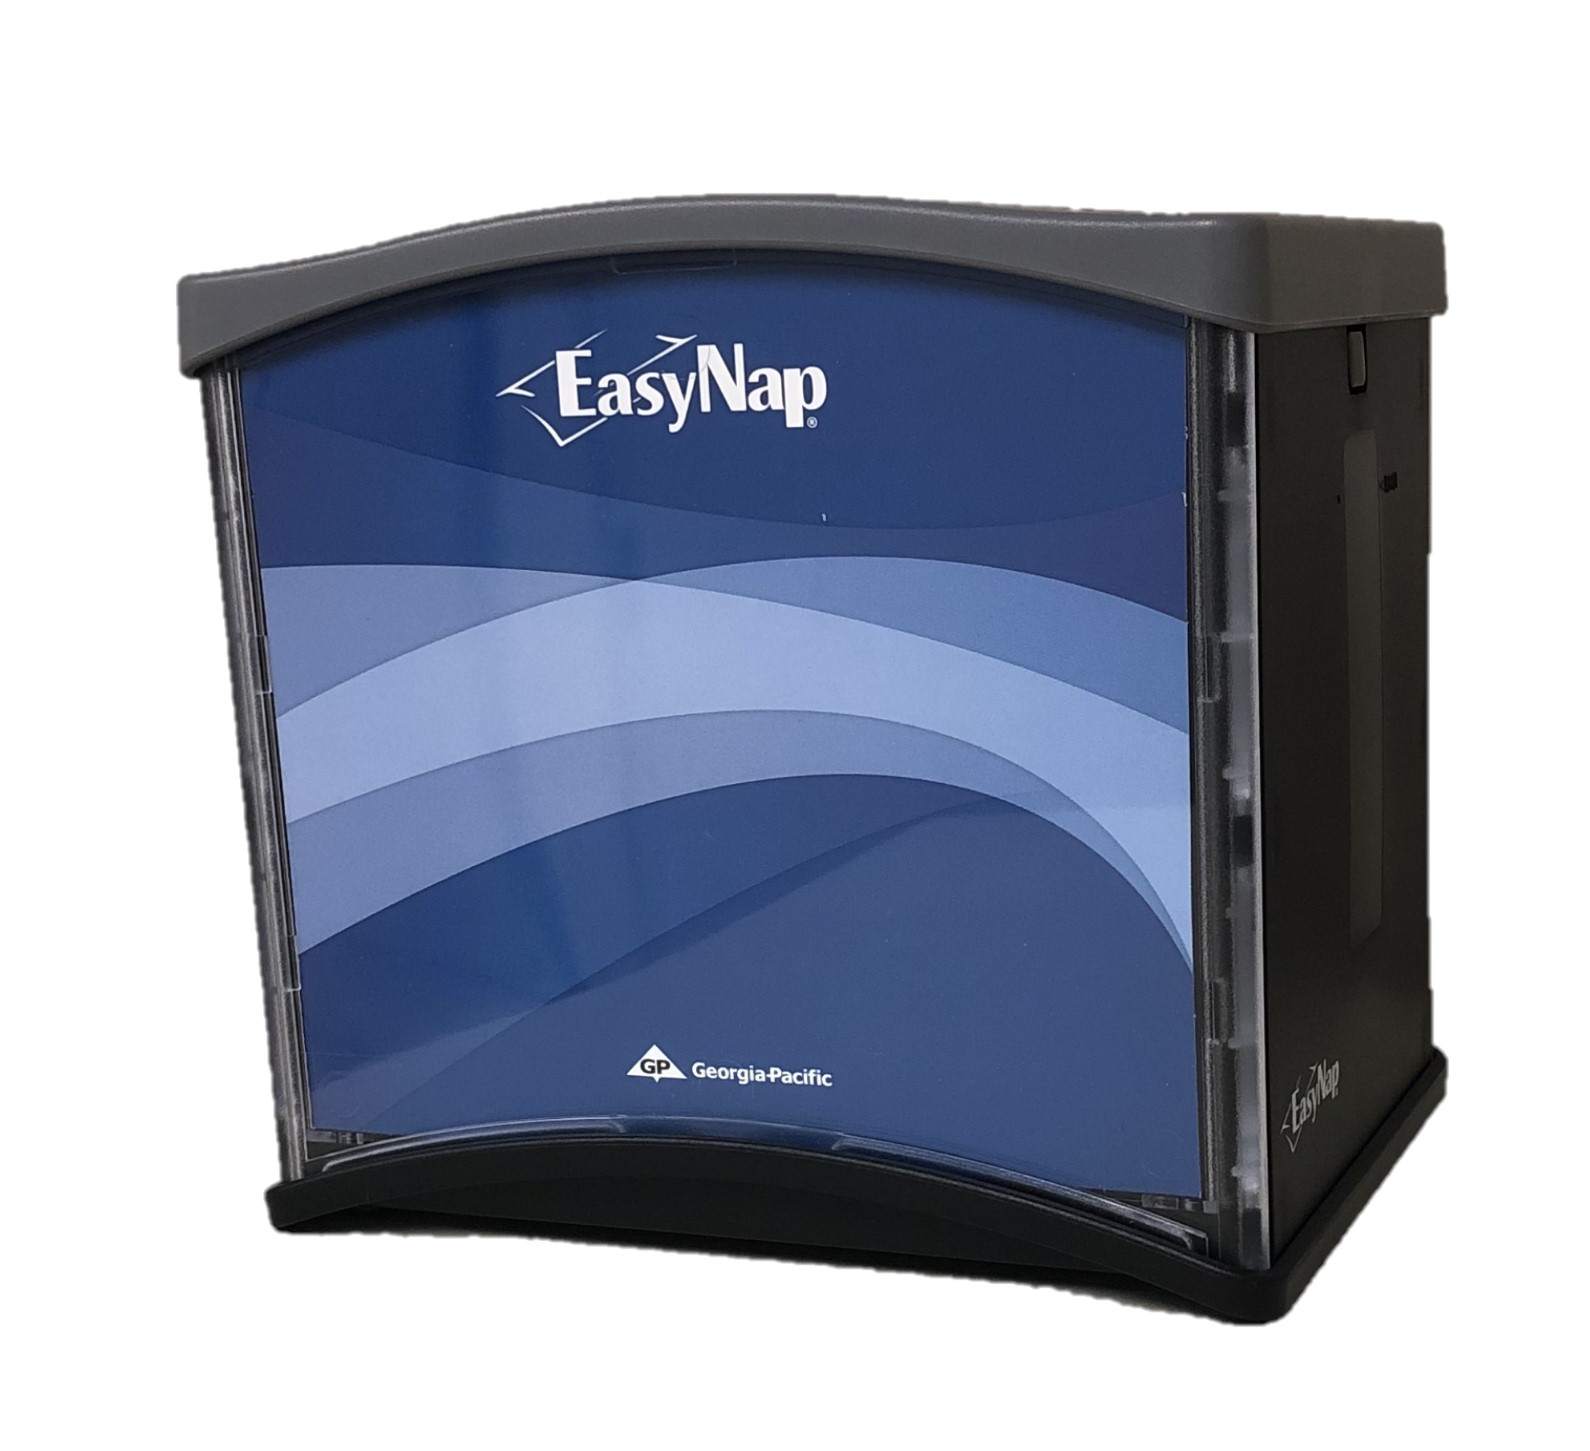 One Nap Dispenser